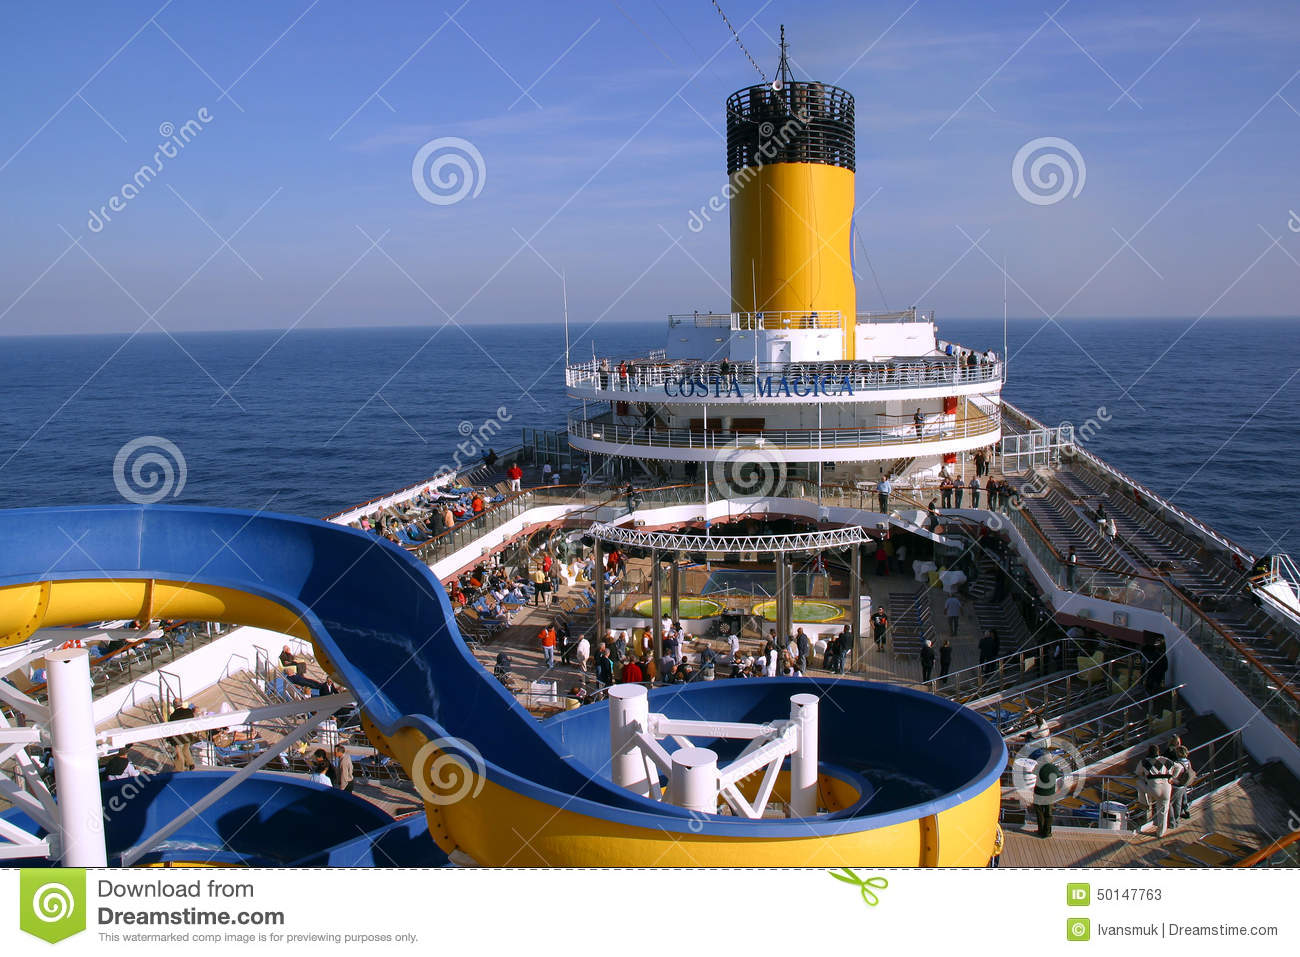 Deck Cruise Ship Costa Magica Editorial Stock Photo.